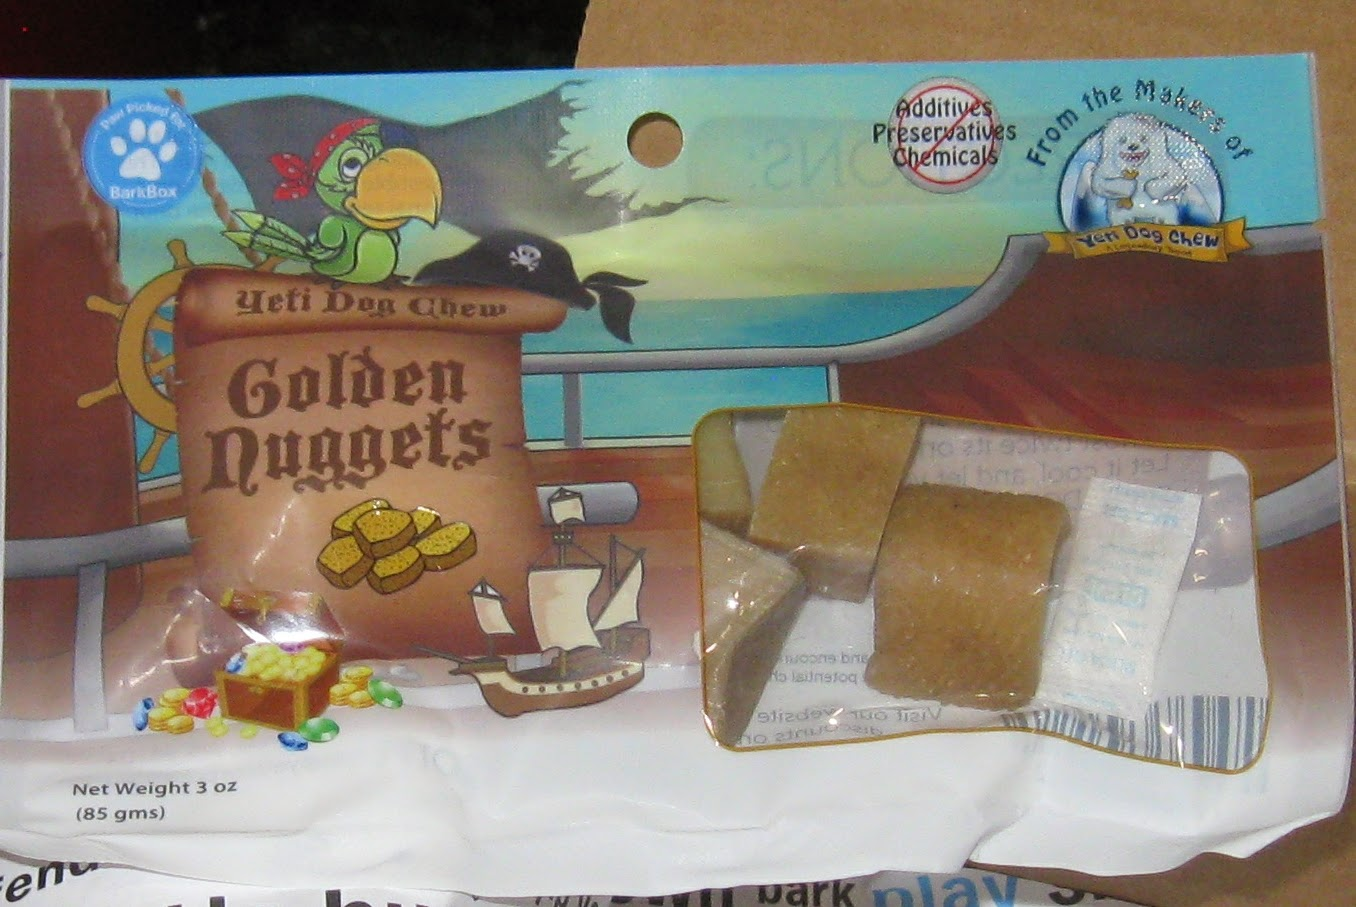 Golden Nuggets treats